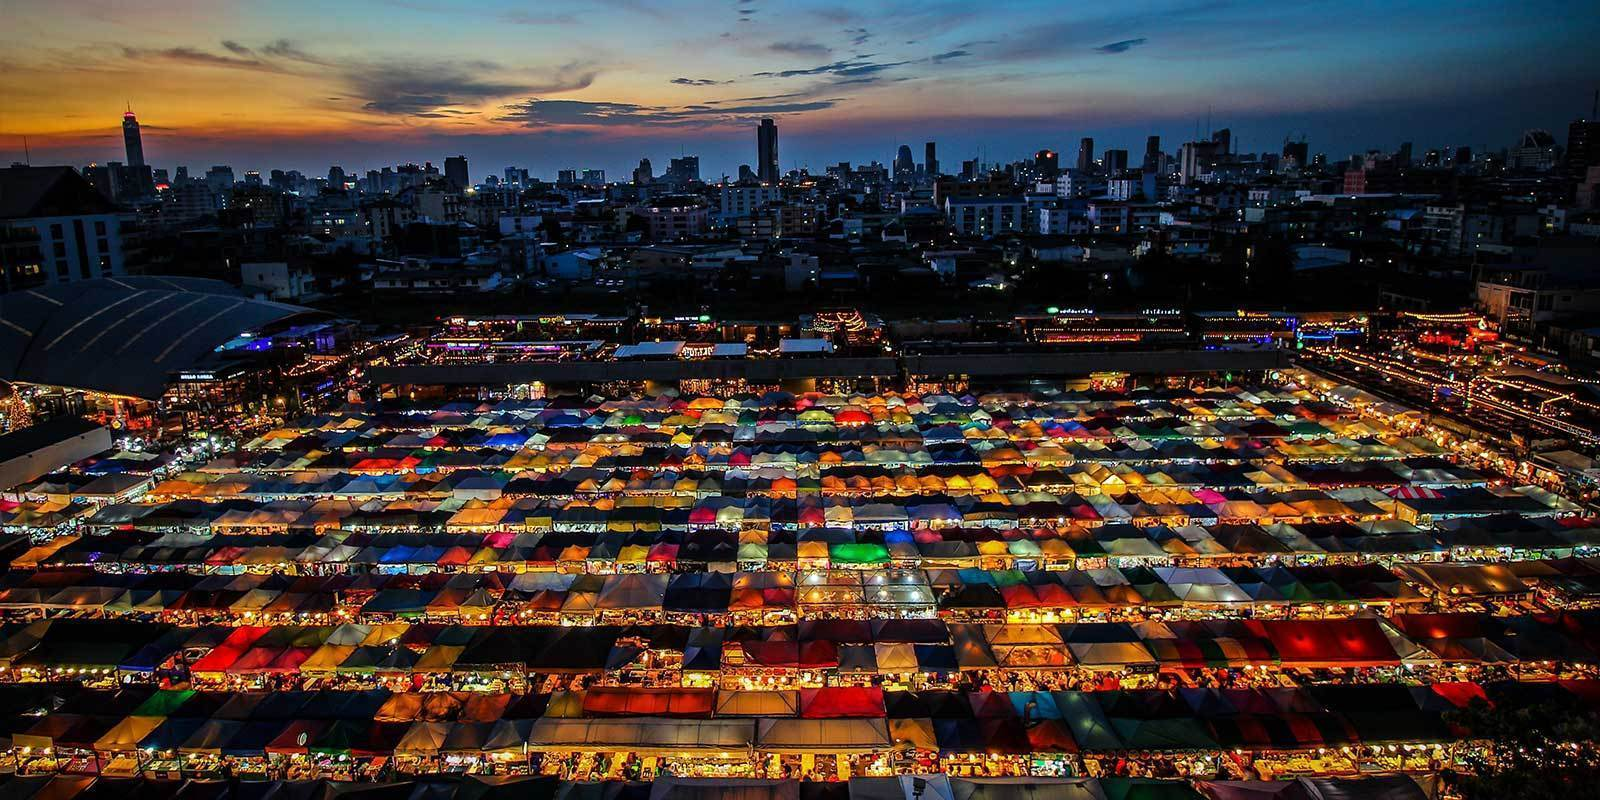 YOUR GUIDE TO 5 OF THE BEST NIGHT MARKETS IN THE US